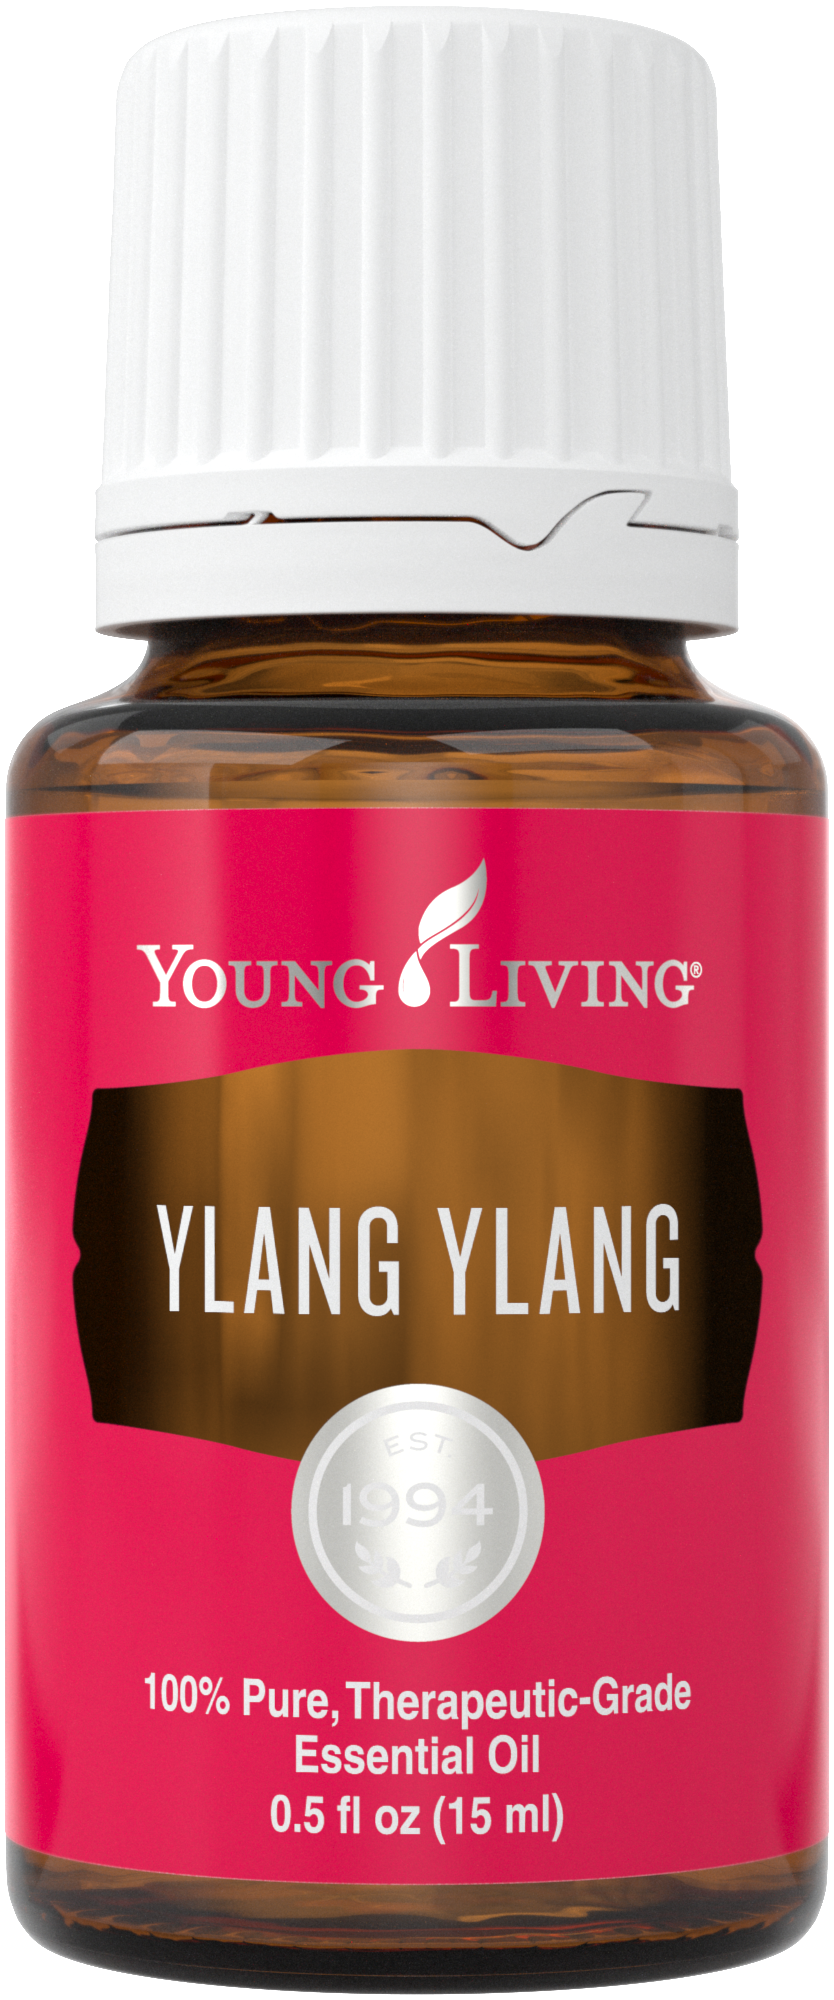 Ylang Ylang essential oil uses | Young Living